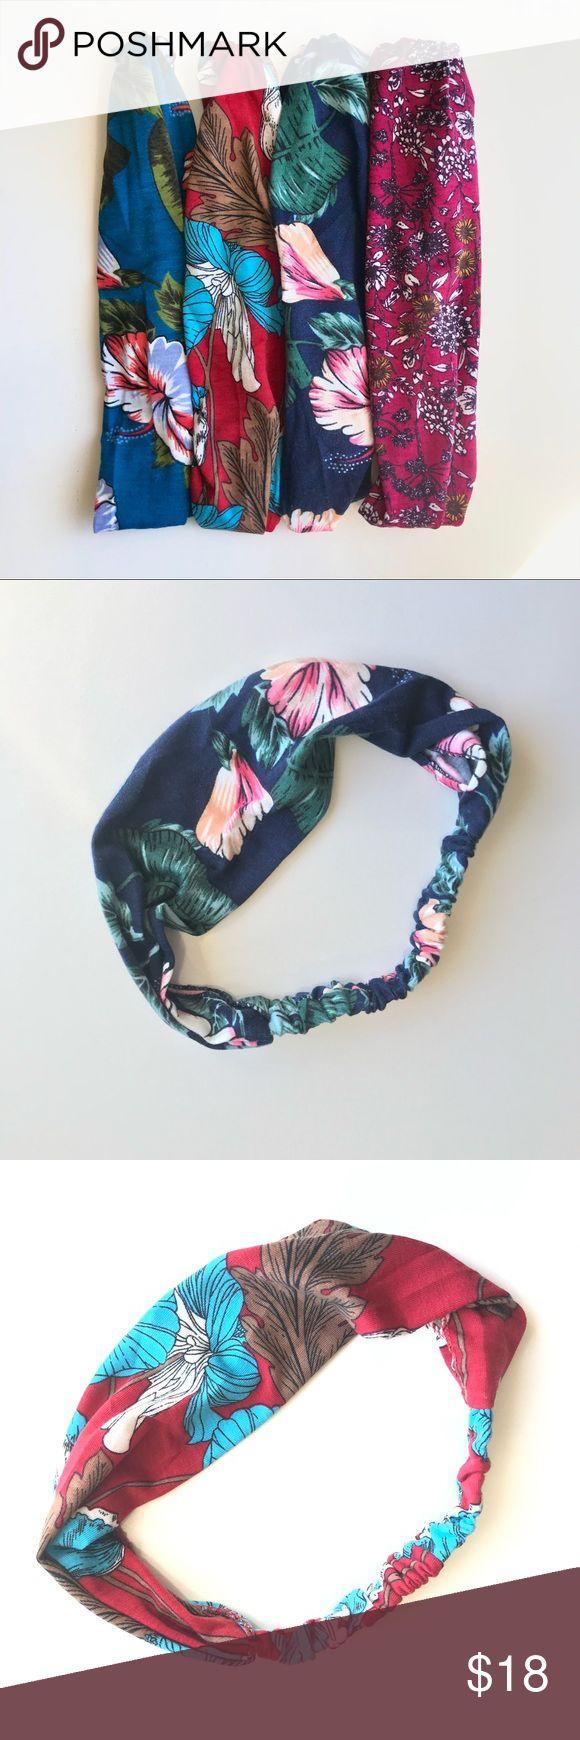 🌳4 Pack floral pattern yoga headbands🌳 Soft and comfortable yoga headbands. 4 pack floral pattern.  Perfect accessory to complete your trendy ou...